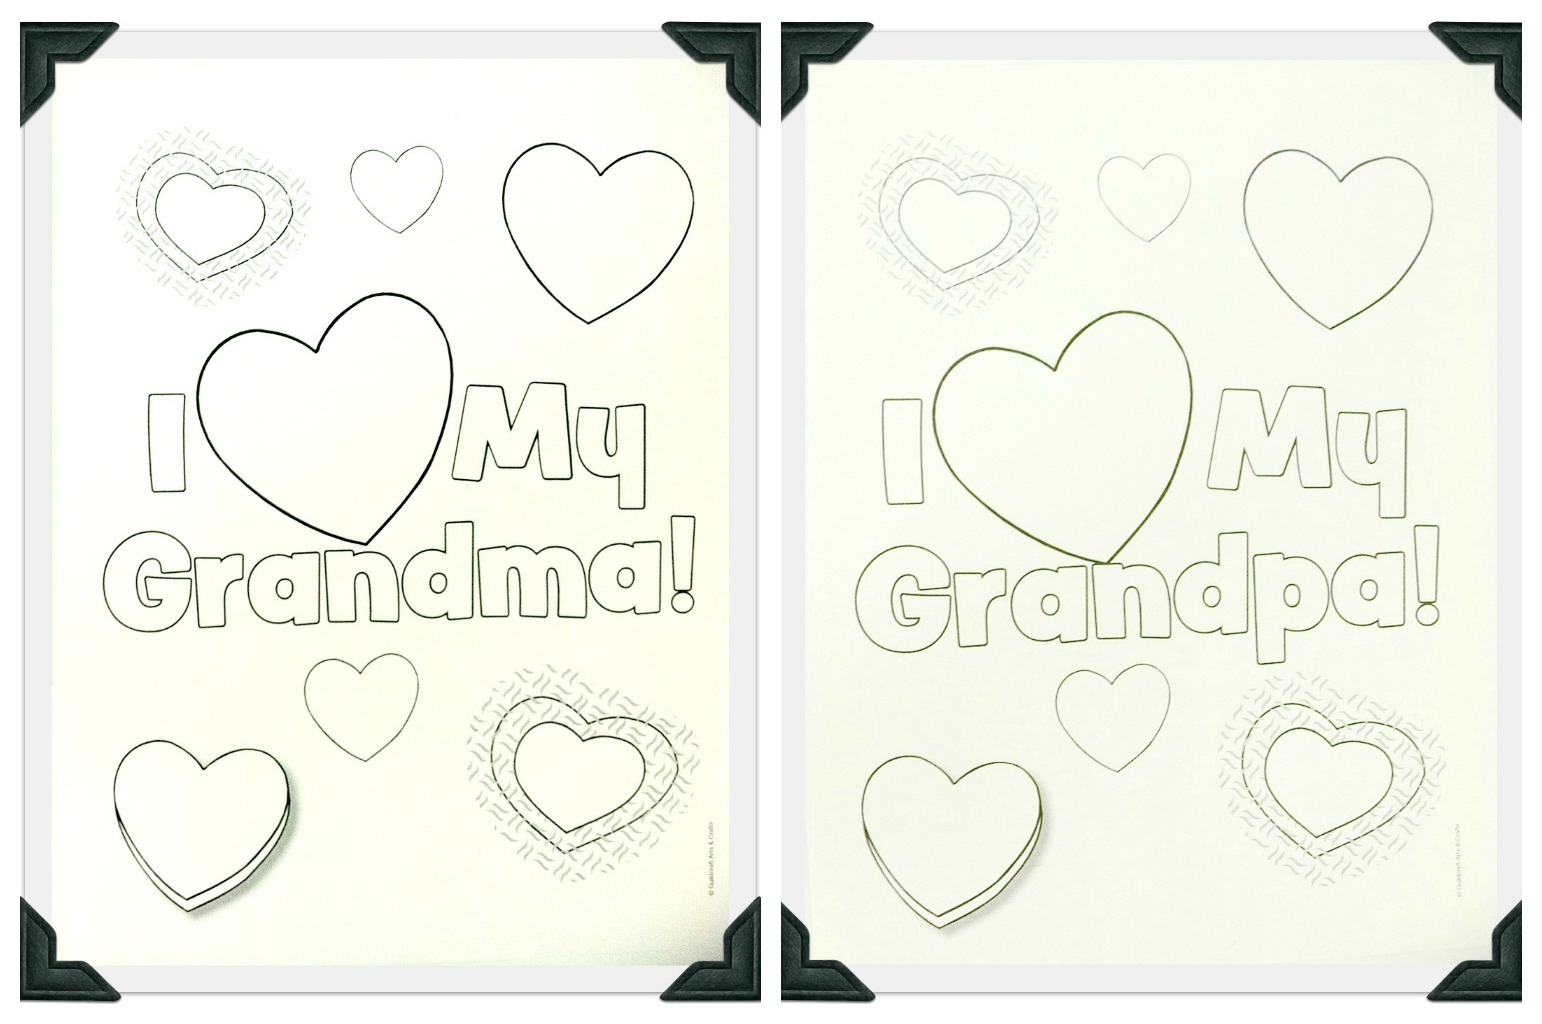 Happy Grandparents Day Coloring Pages 5